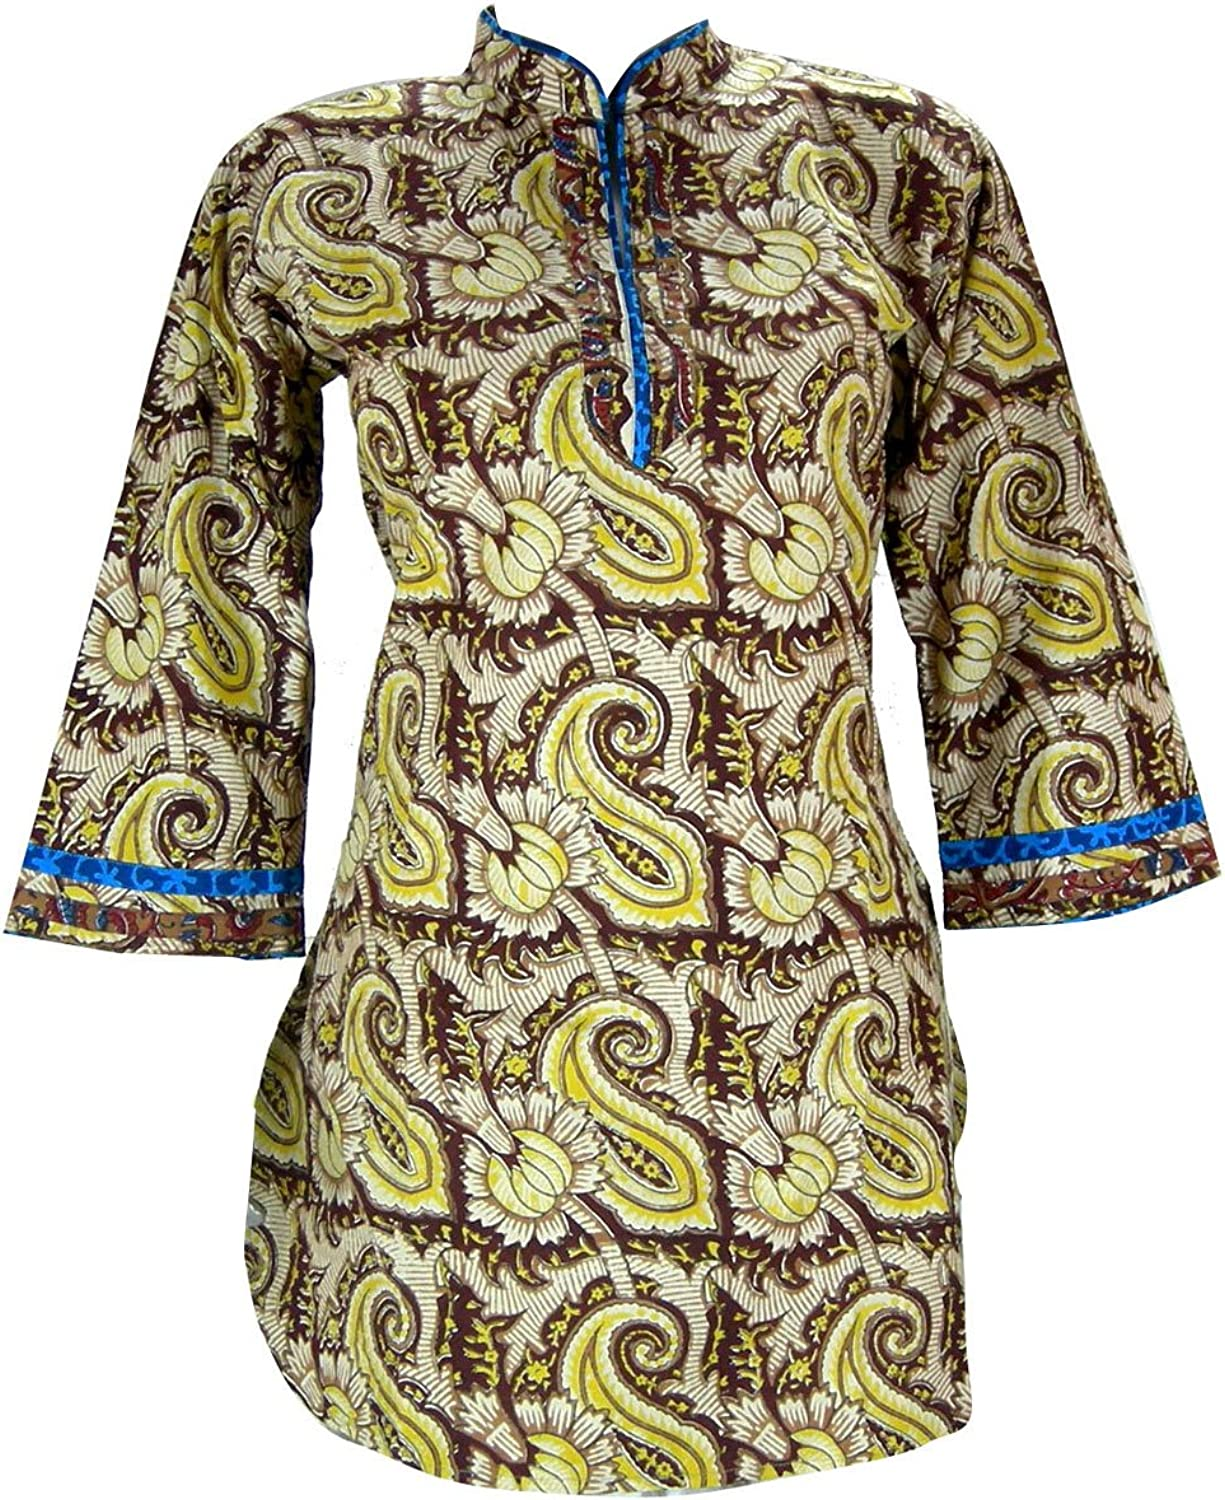 Traditional Printed Top Kurta Indian Clothing  Length 33  , Bust 38  (L)